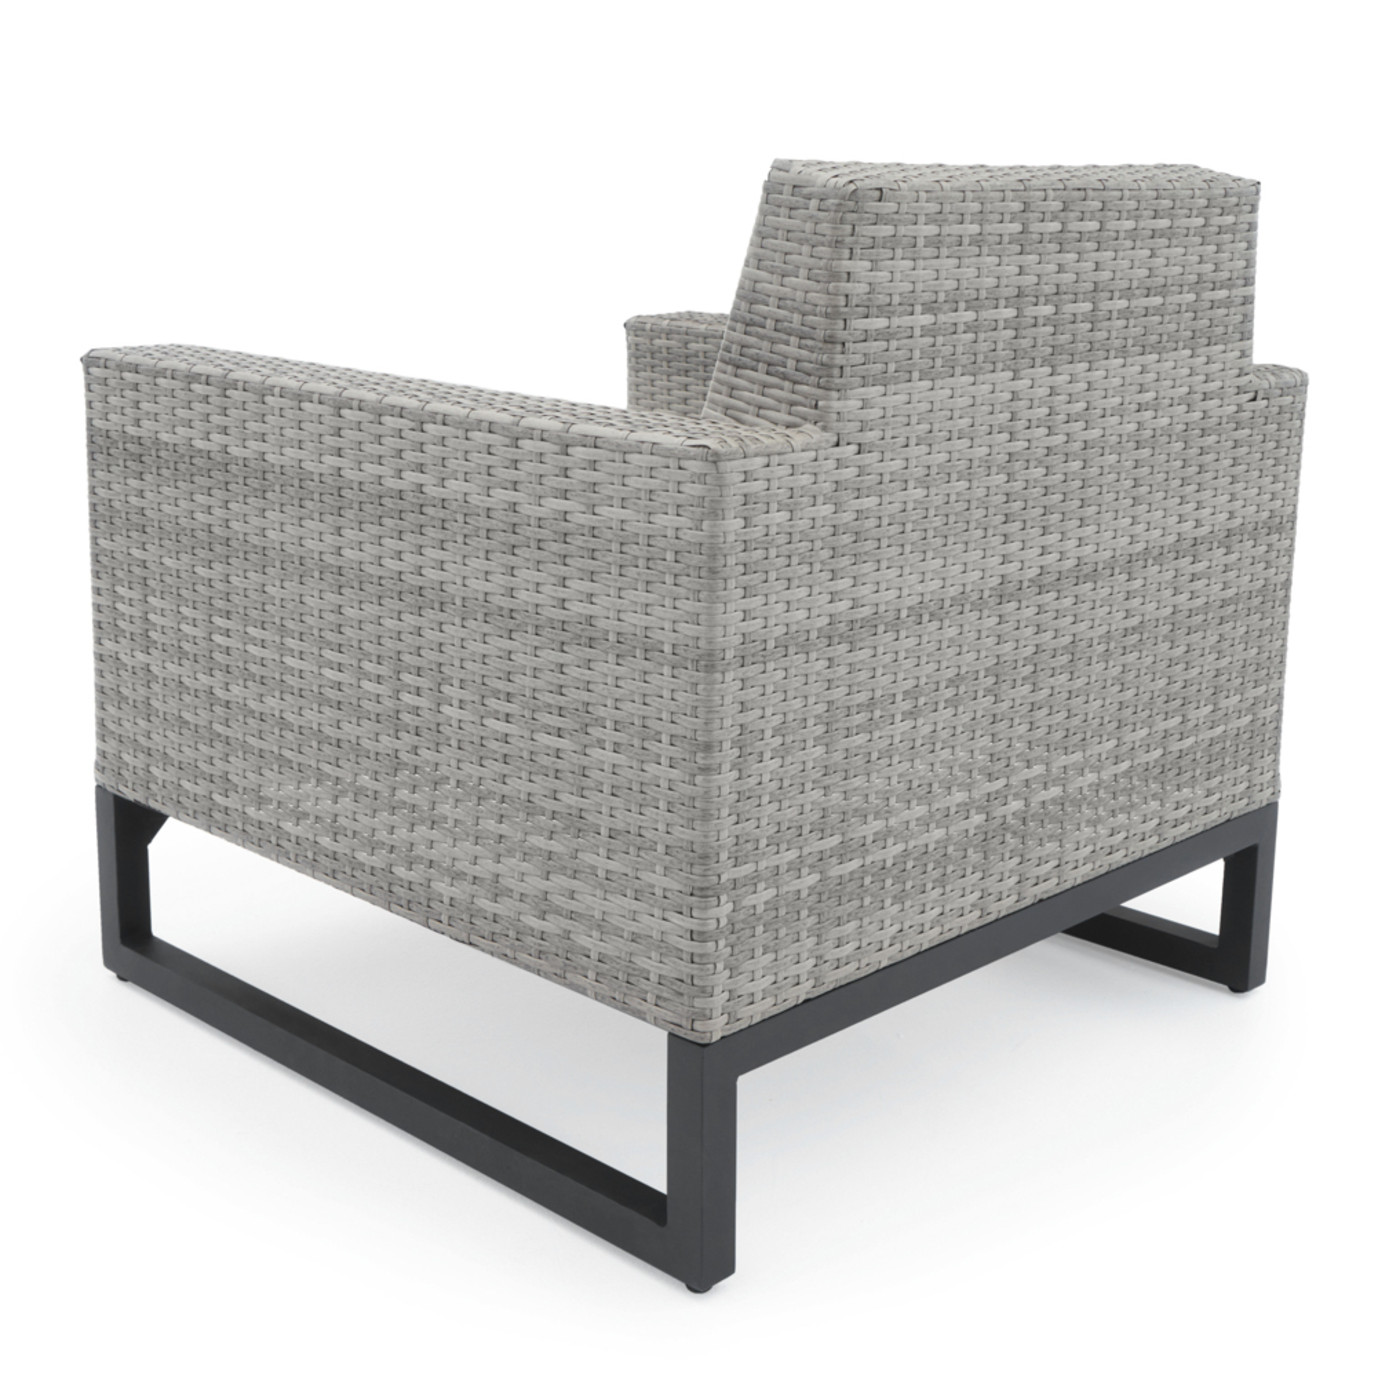 Milo™ Gray Club Chairs - Sunset Red